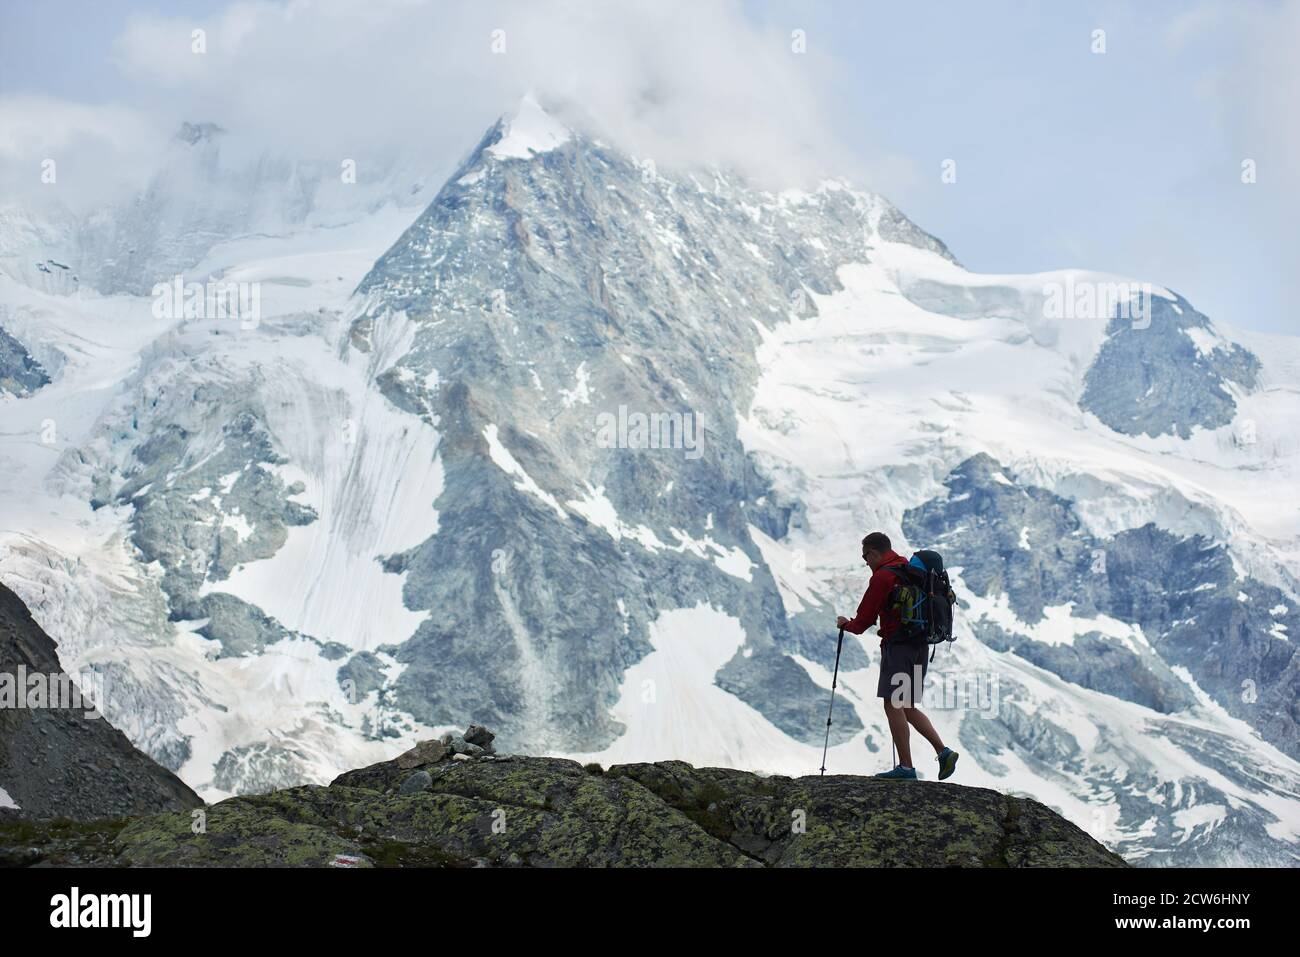 Male tourist with backpack walking using trekking sticks. Amazing, rocky mountain Ober Gabelhorn in snow in the Pennine Alps in Switzerland on background. Concept of tourism, hiking, alpinism Stock Photo